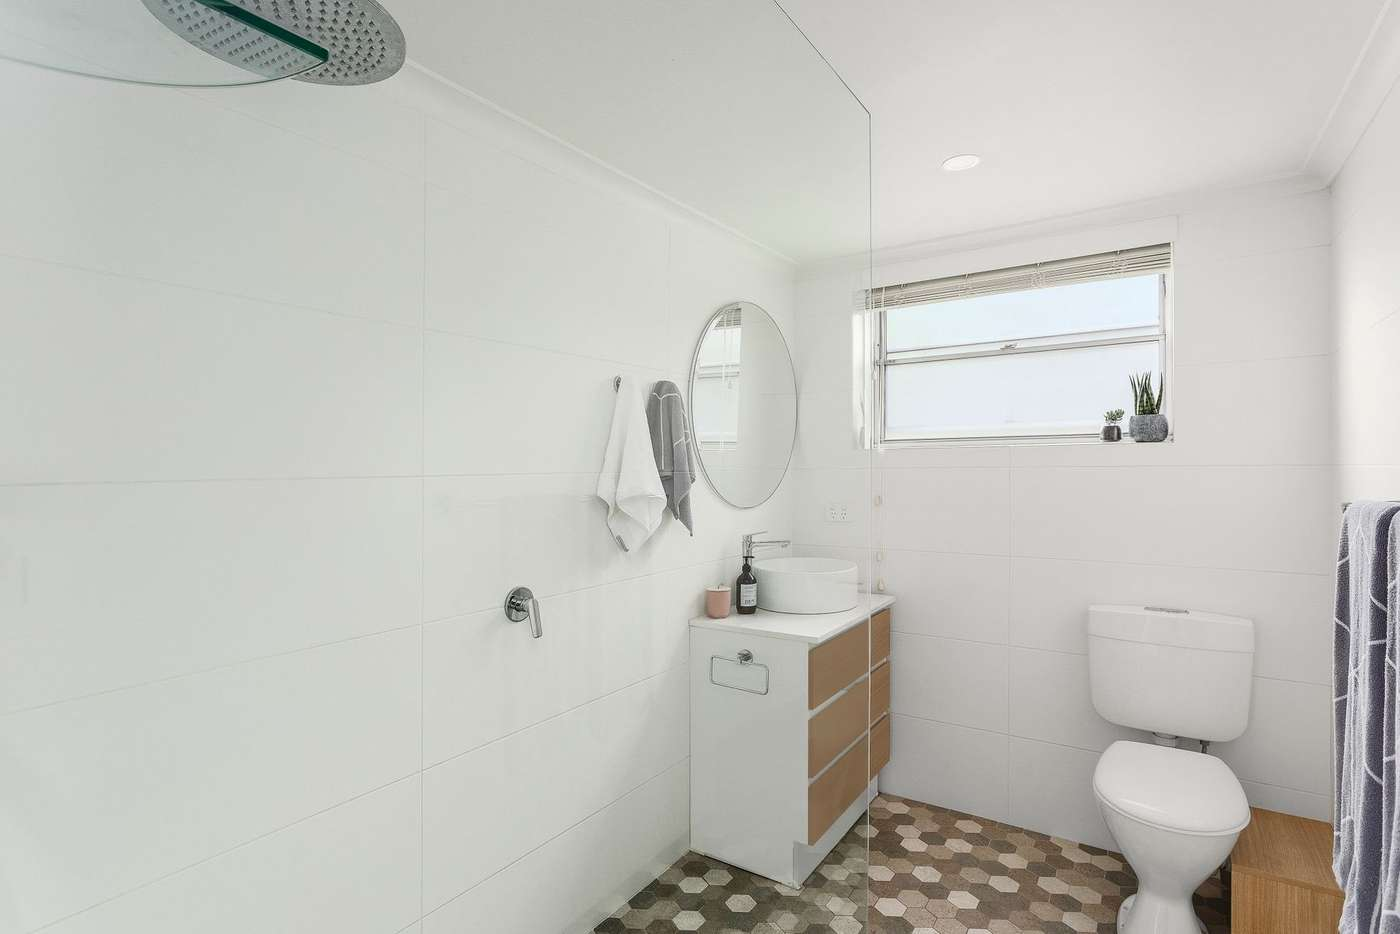 Sixth view of Homely apartment listing, 4/44 Morton Street, Wollstonecraft NSW 2065